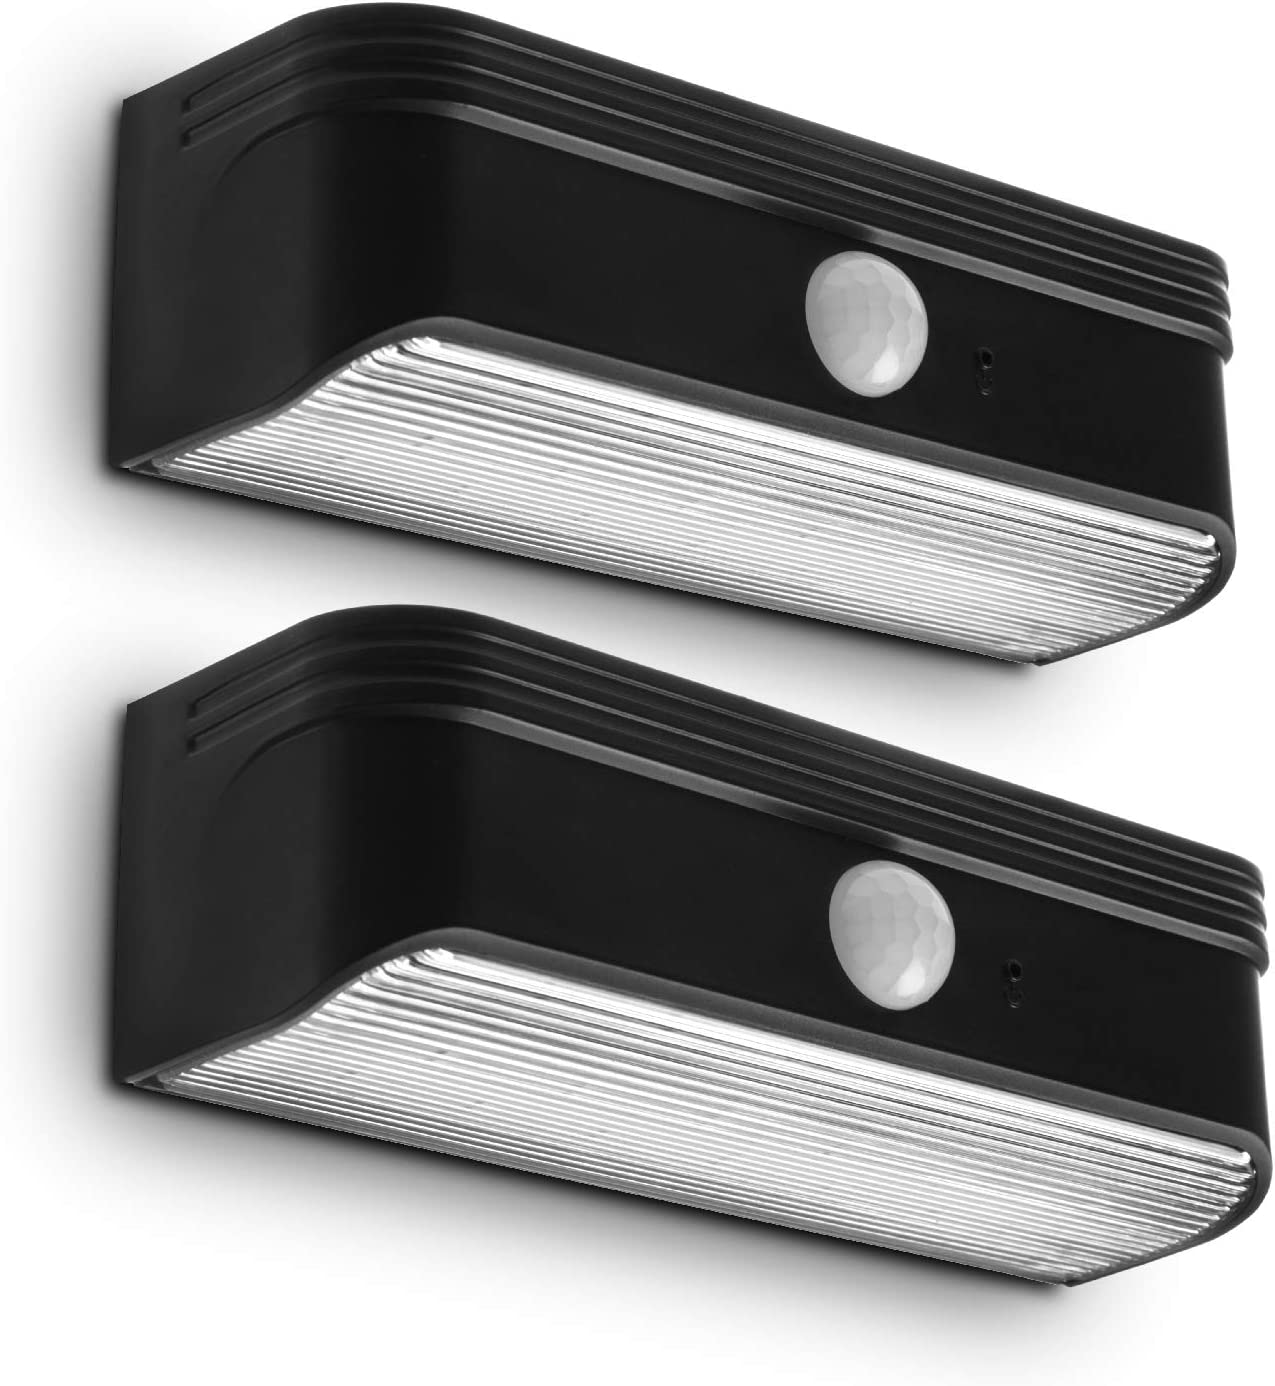 Home Zone Security Solar Step Lights - Motion Sensor LED Outdoor Deck and Step Lights with No Wring Required, 2-Pack